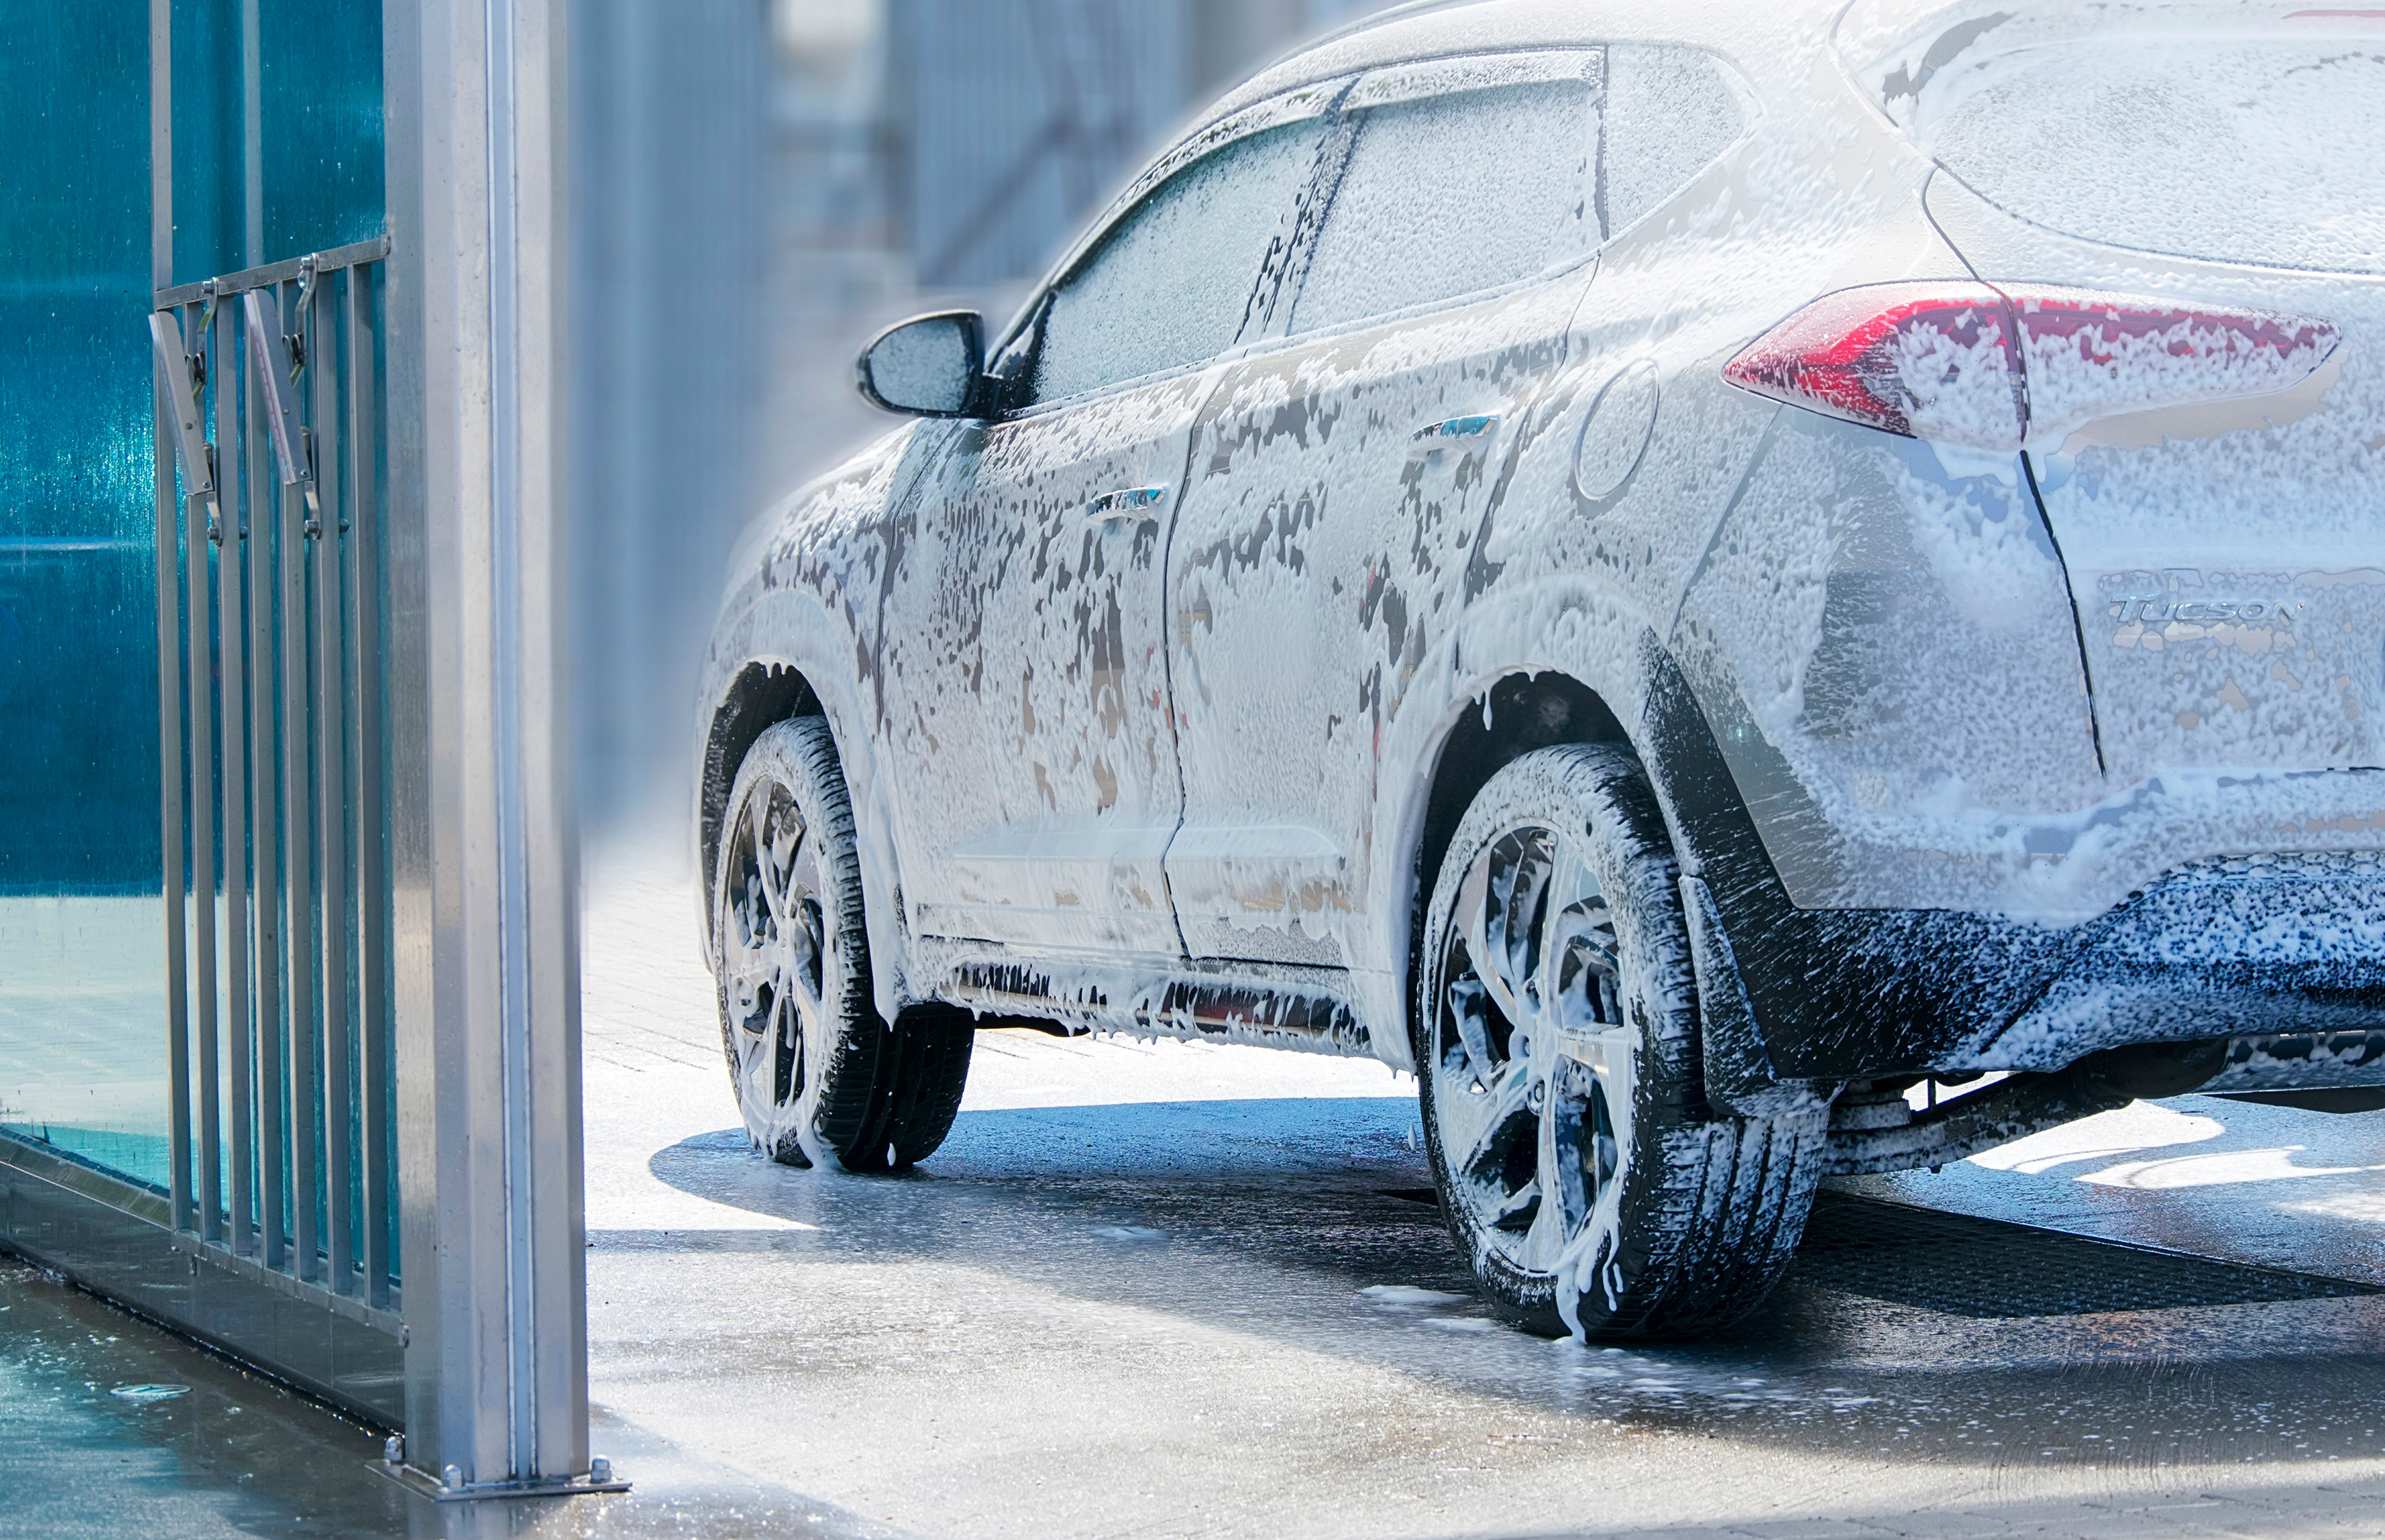 Get your car cleaned before selling it webuyanycar.com (image: Shutterstock)